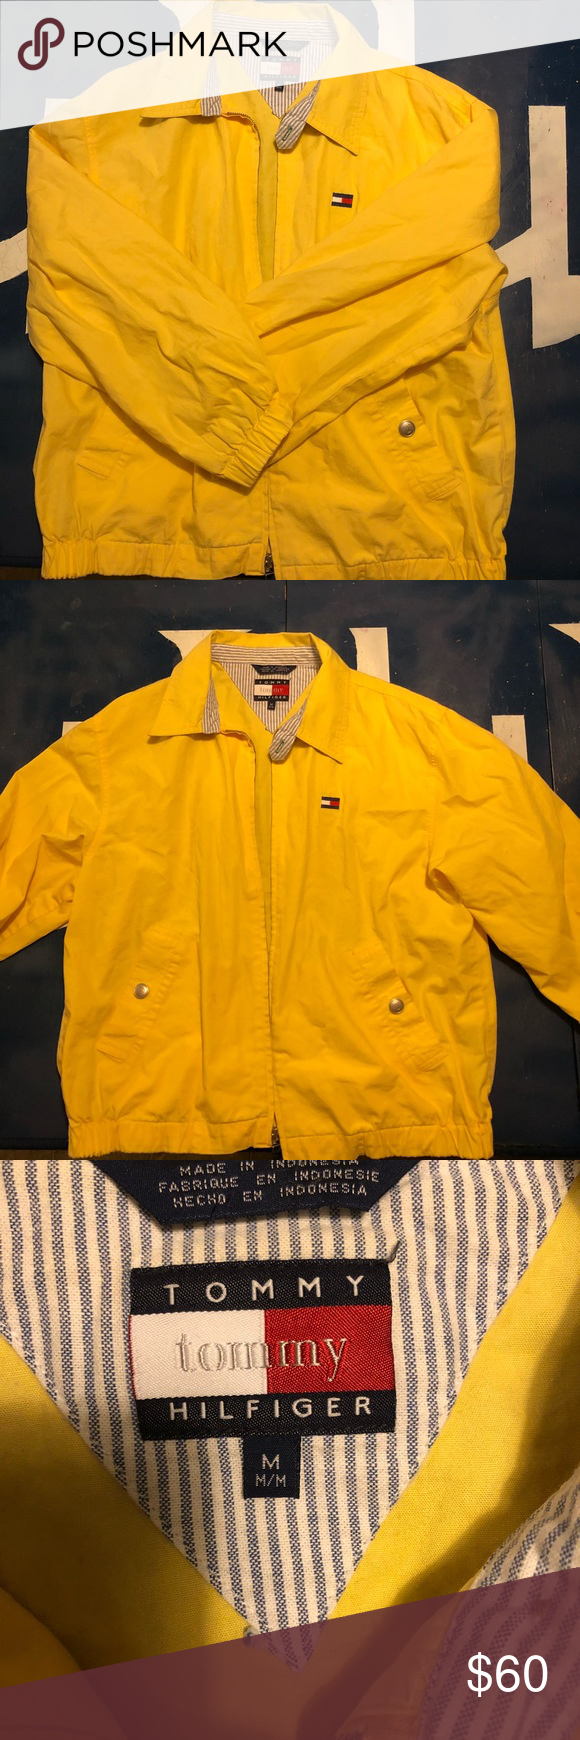 Vintage Tommy Hilfiger Yellow Zip Up Made in Indonesia 100